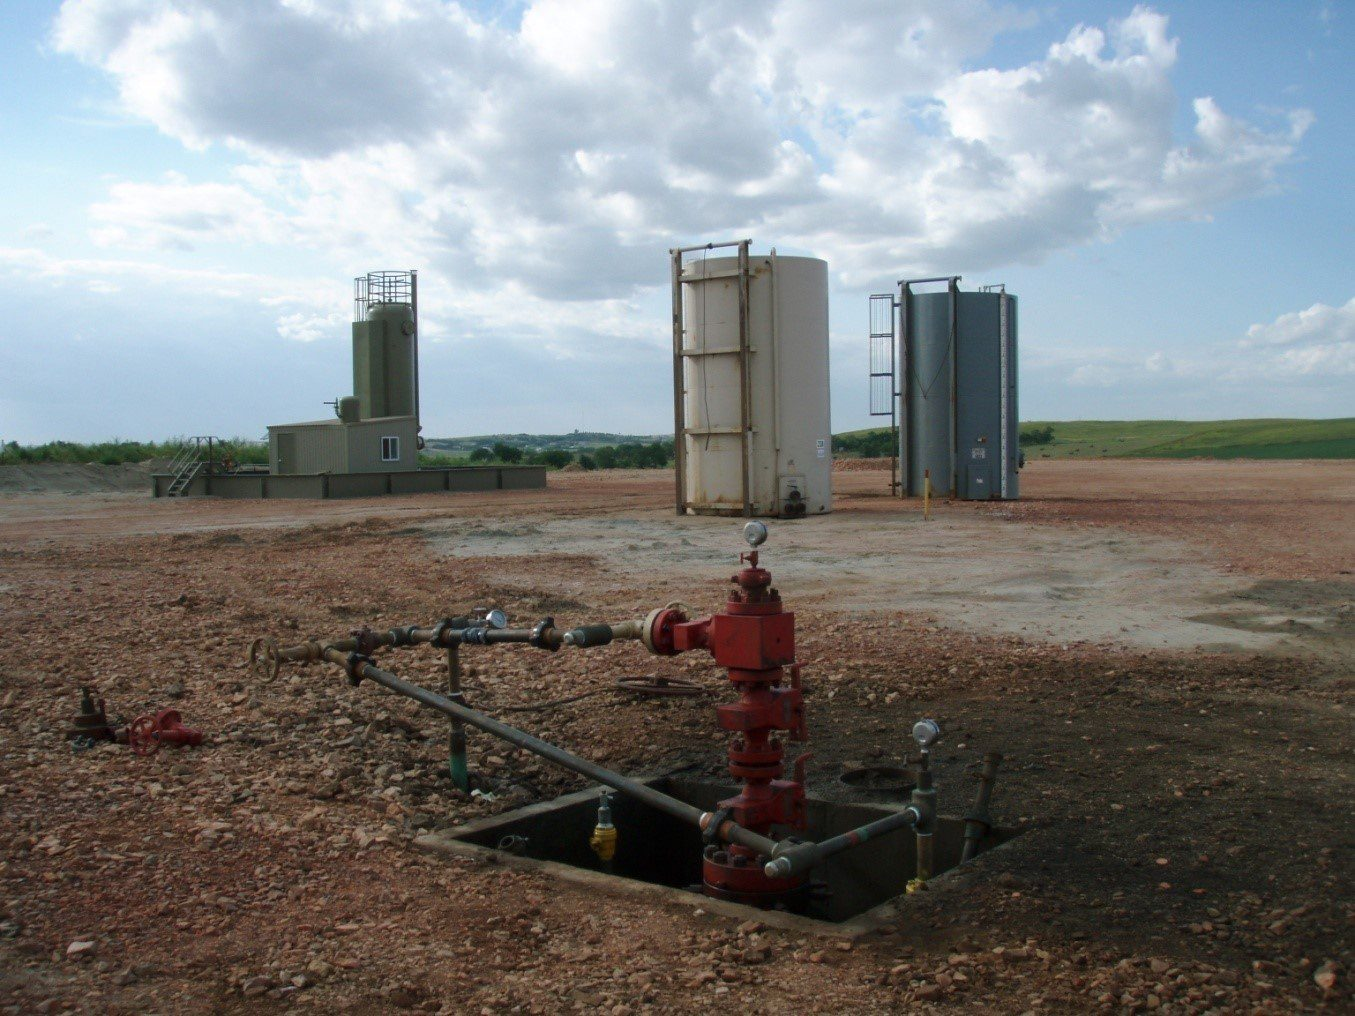 The Environmental Issues of Hydraulic Fracturing - Facts vs. Fiction